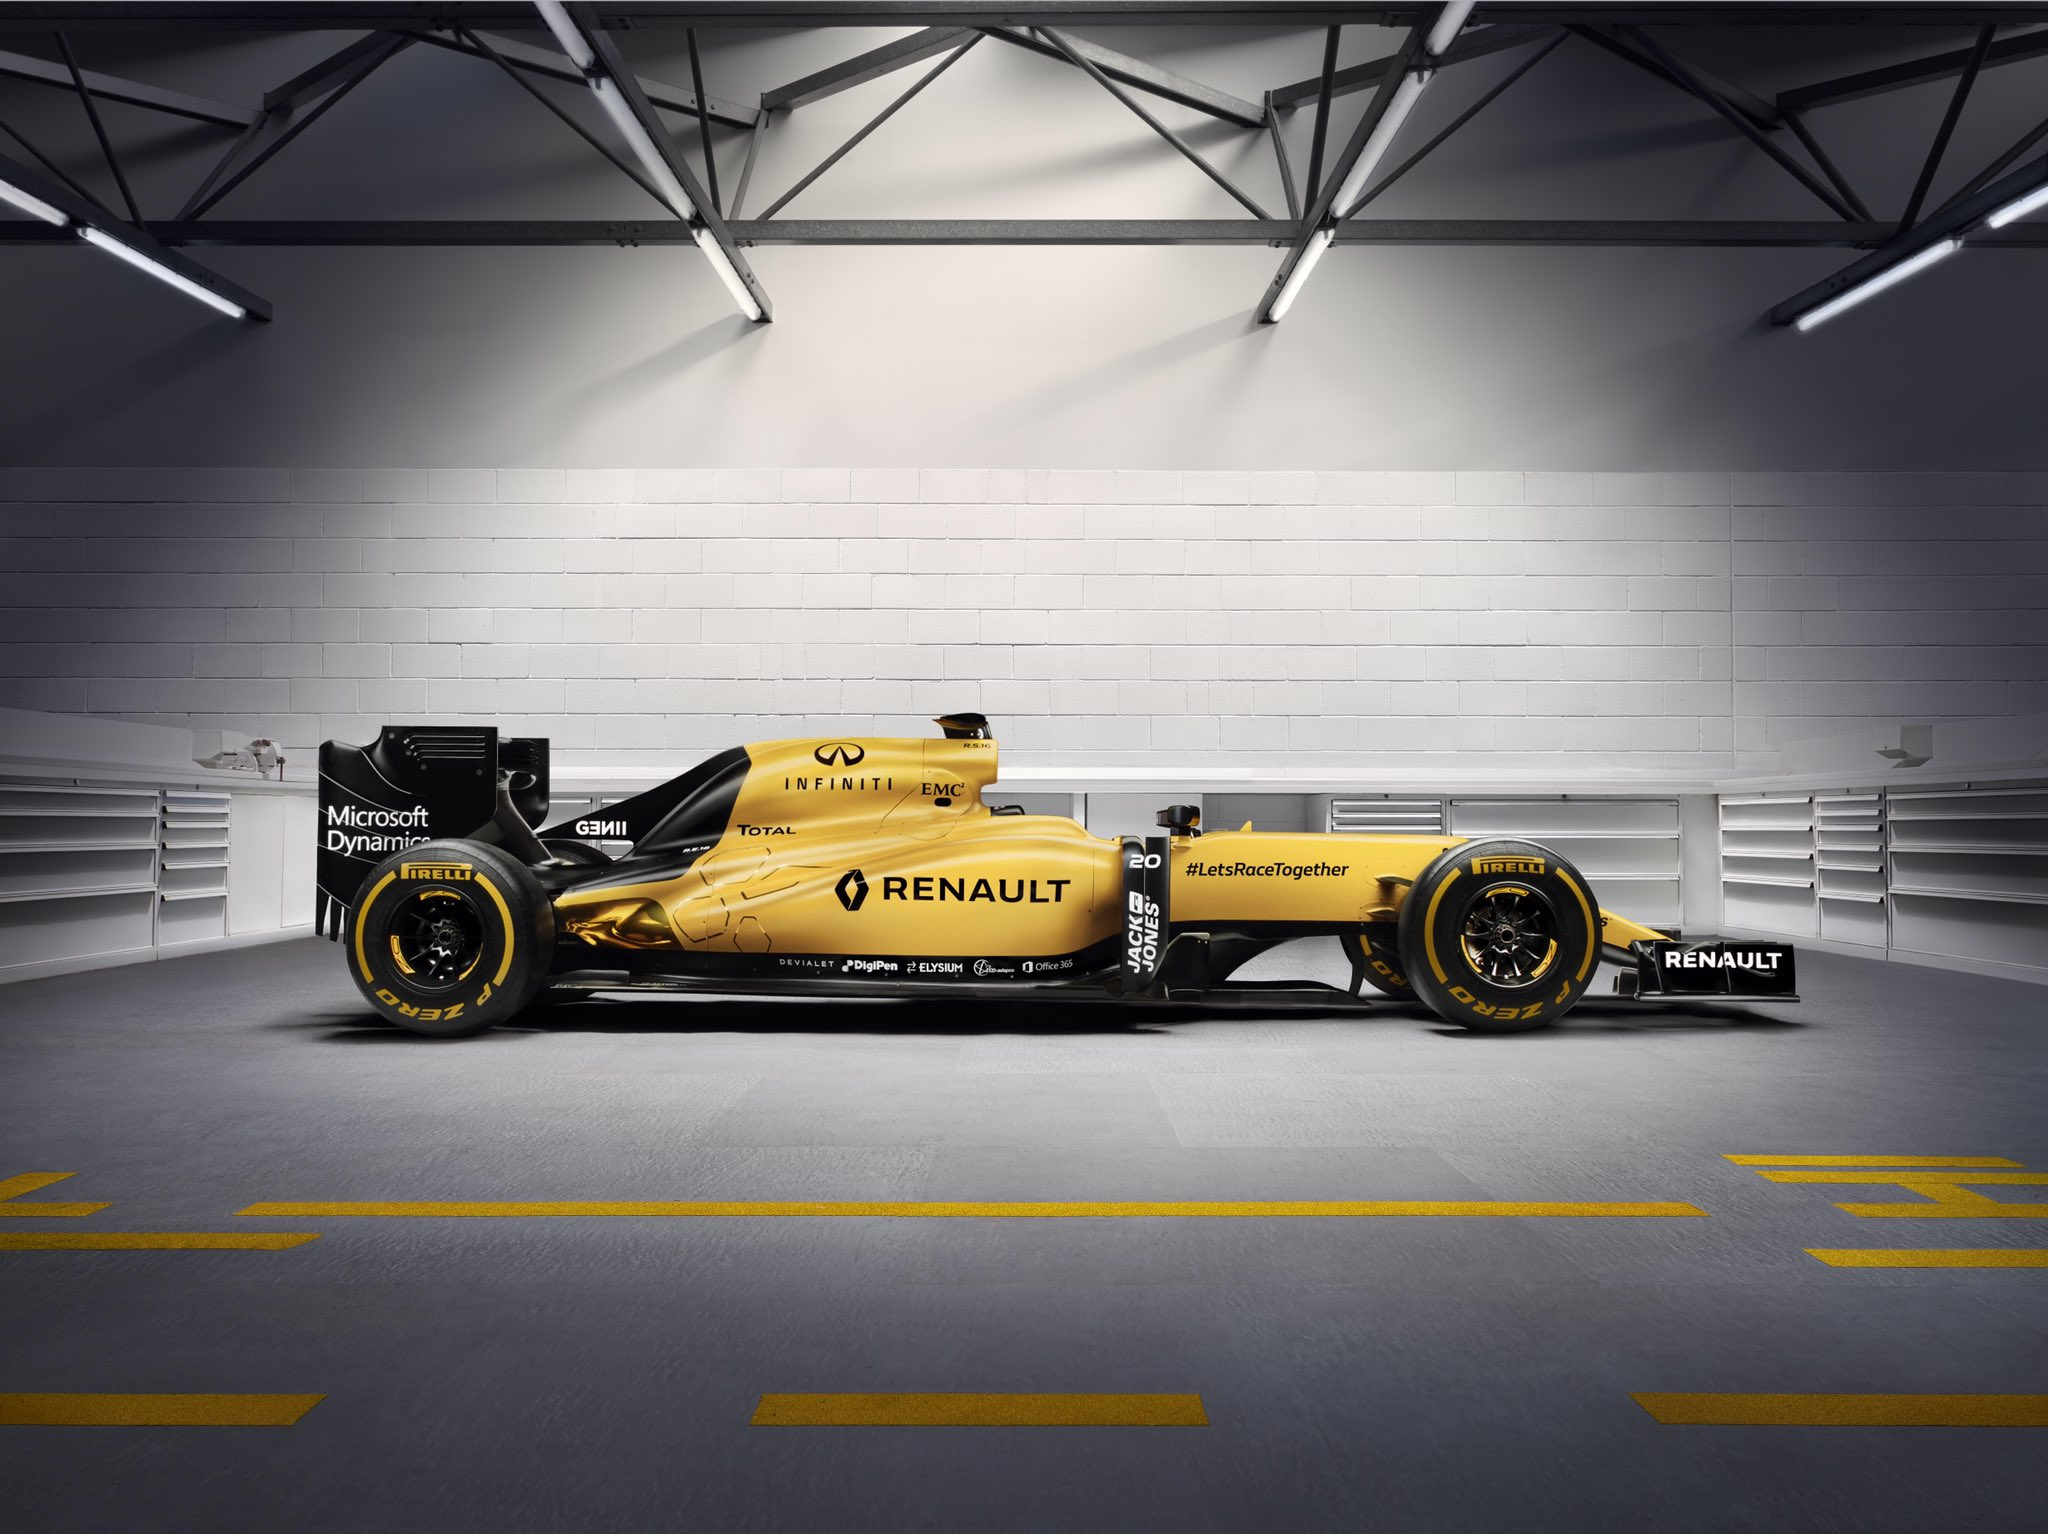 renault sport f1 on twitter here she is folks in all her gloriously yellowness the r. Black Bedroom Furniture Sets. Home Design Ideas